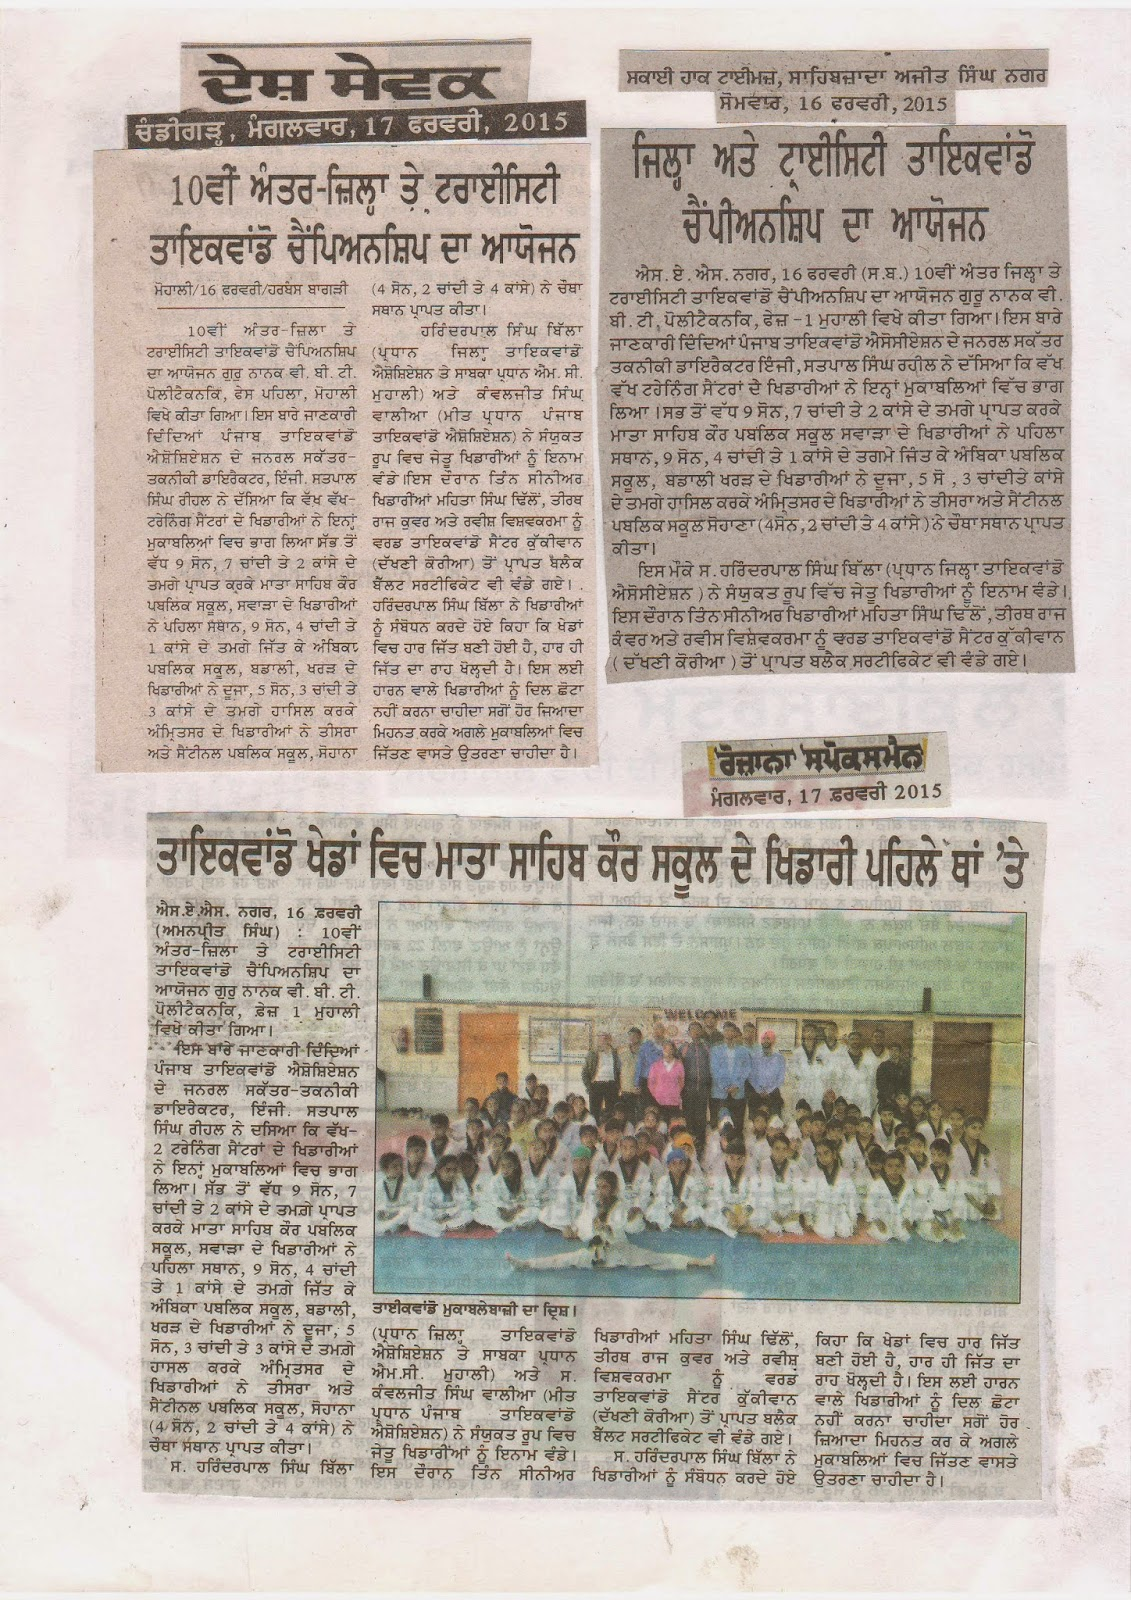 10th Inter Dist & Tricity Taekwondo, Martial Arts, Tkd, Championships, Training, Classes, Coaching, Self-defence, Girls, Women, Safety, Fitness,  Mohali, SAS Nagar, near Chandigarh, Punjab, India, World, Shere, Lions, Videos, Movies, Master, Er. Satpal Singh Rehal, Rehal, Academy, Association, Federation, Clubs, Satpal Rehal, Korean Judo Karate, Chandigarh, Reiki, Healing, Kot Maira, Garhshankar, Hoshiarpur, Jalandhar, Amritsar, Patiala, Mansa, Ludhiana, Ferozepur, Sangrur, Moga, Pathankot, Gurdaspur, Barnala, Nawanshahar, Ropar, Ajitgarh, Fatehgarh Sahib, Taran Taran, Patti, Faridkot, Winners, Medal Ceremony, Chief Guest, TAP, PTA, Grandmaster, Reiki, TFI, Jimmy R Jagtiani, Lucknow, School, Games, Players